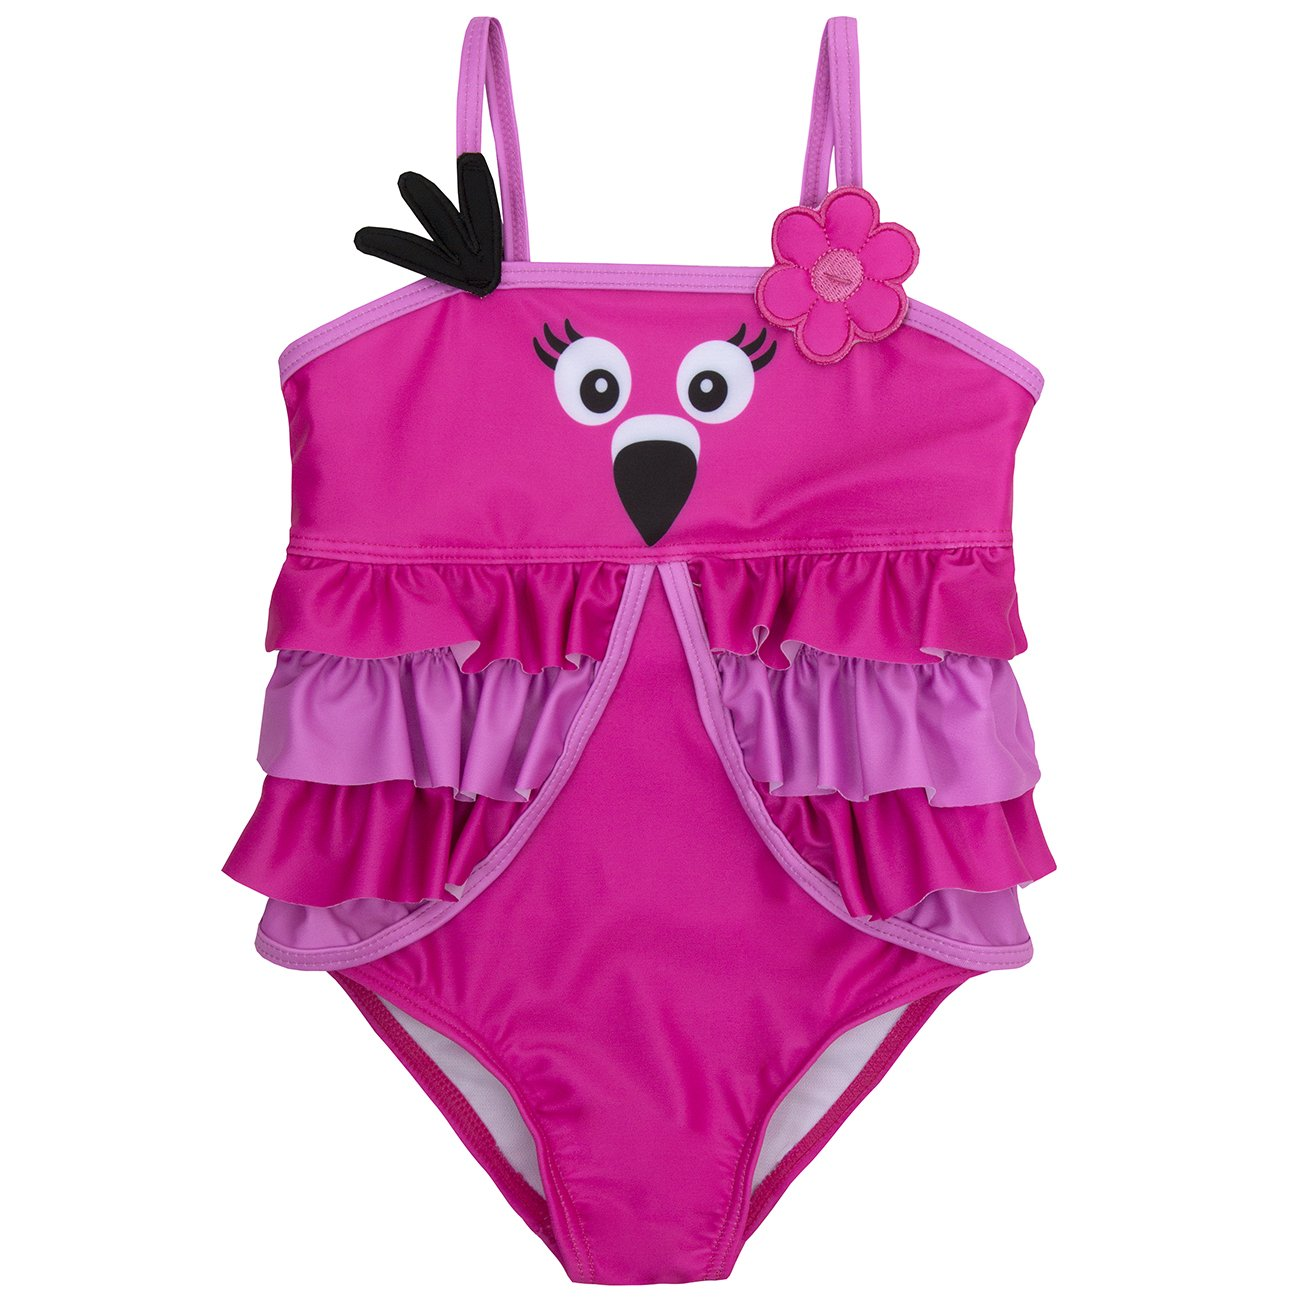 BABY TOWN Infant Baby Girls Novelty Swimming Costume Swimsuit